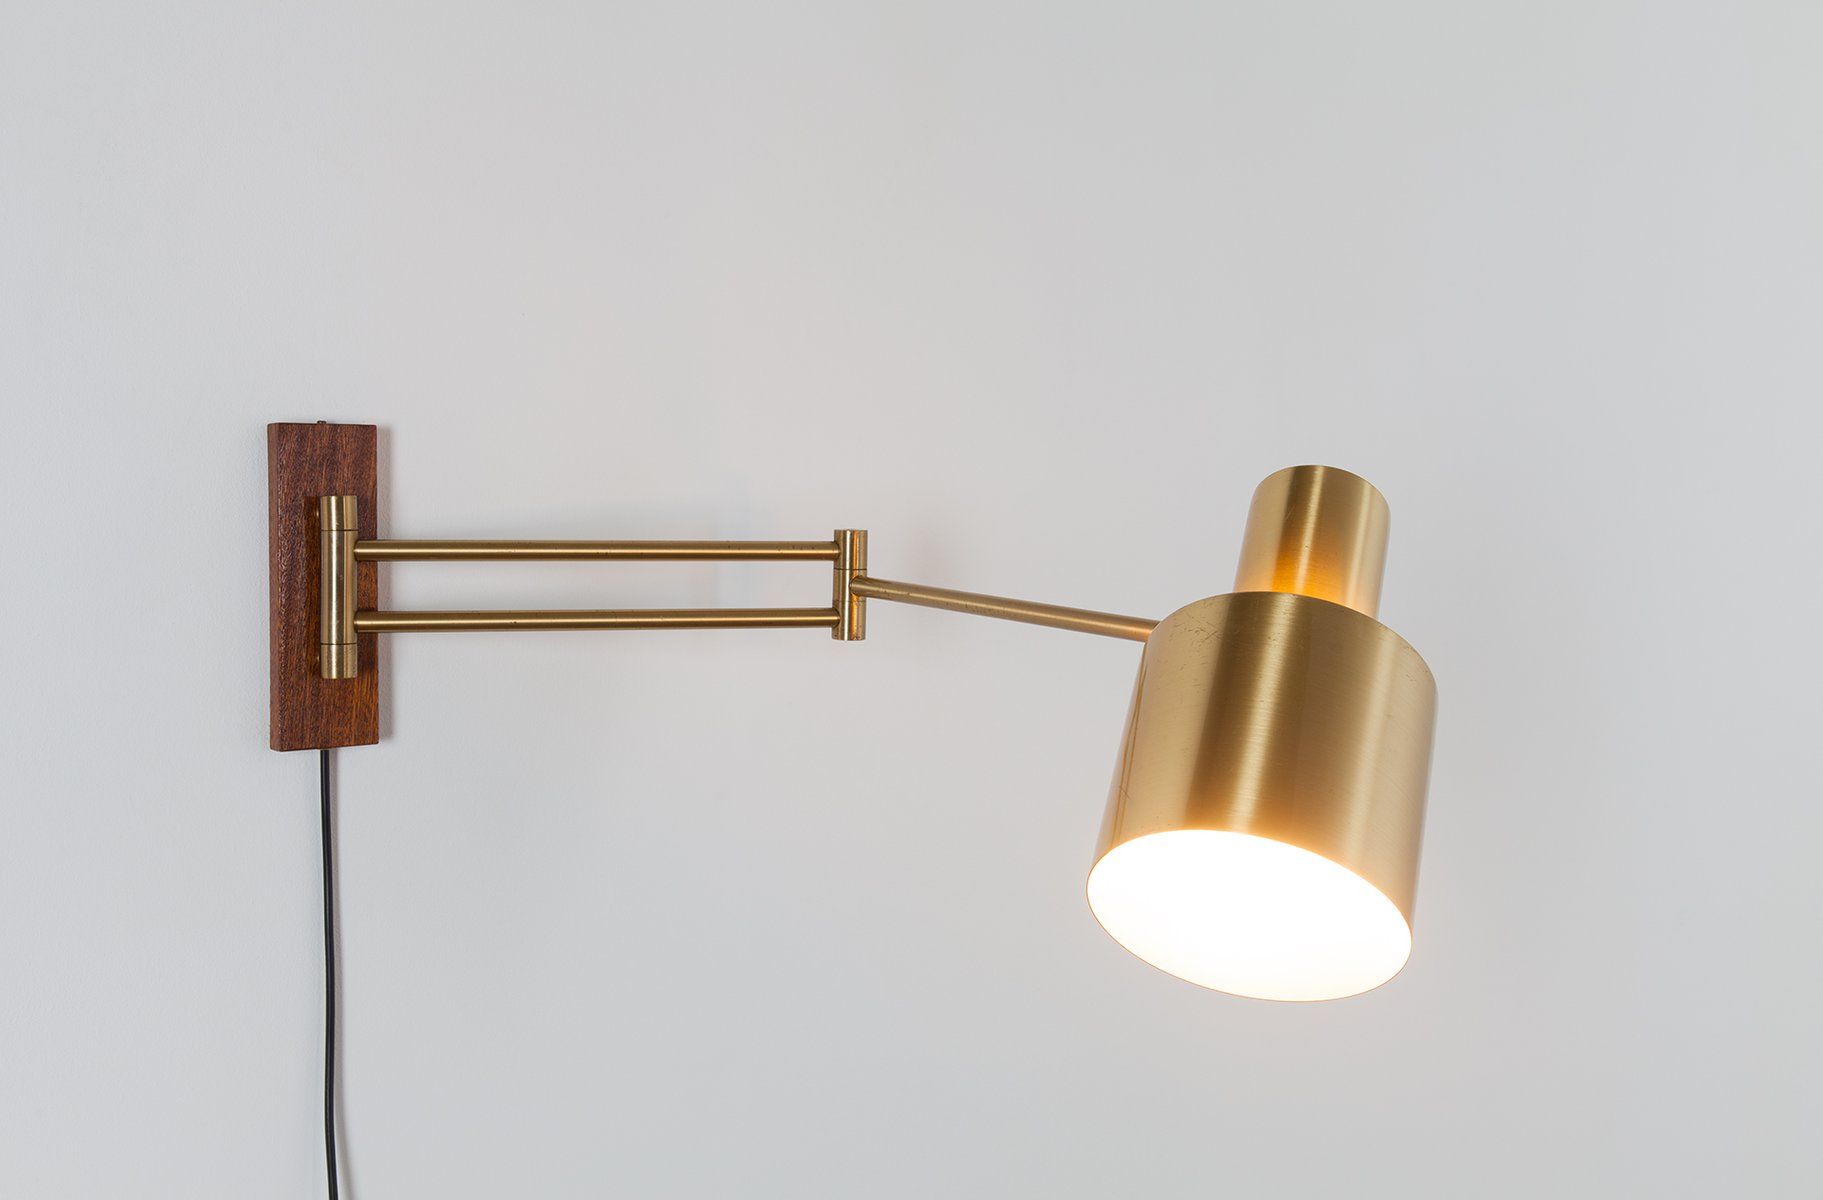 Horisont Extendable Wall Light by Jo Hammerborg for Fog & M?rup, 1960s for sale at Pamono